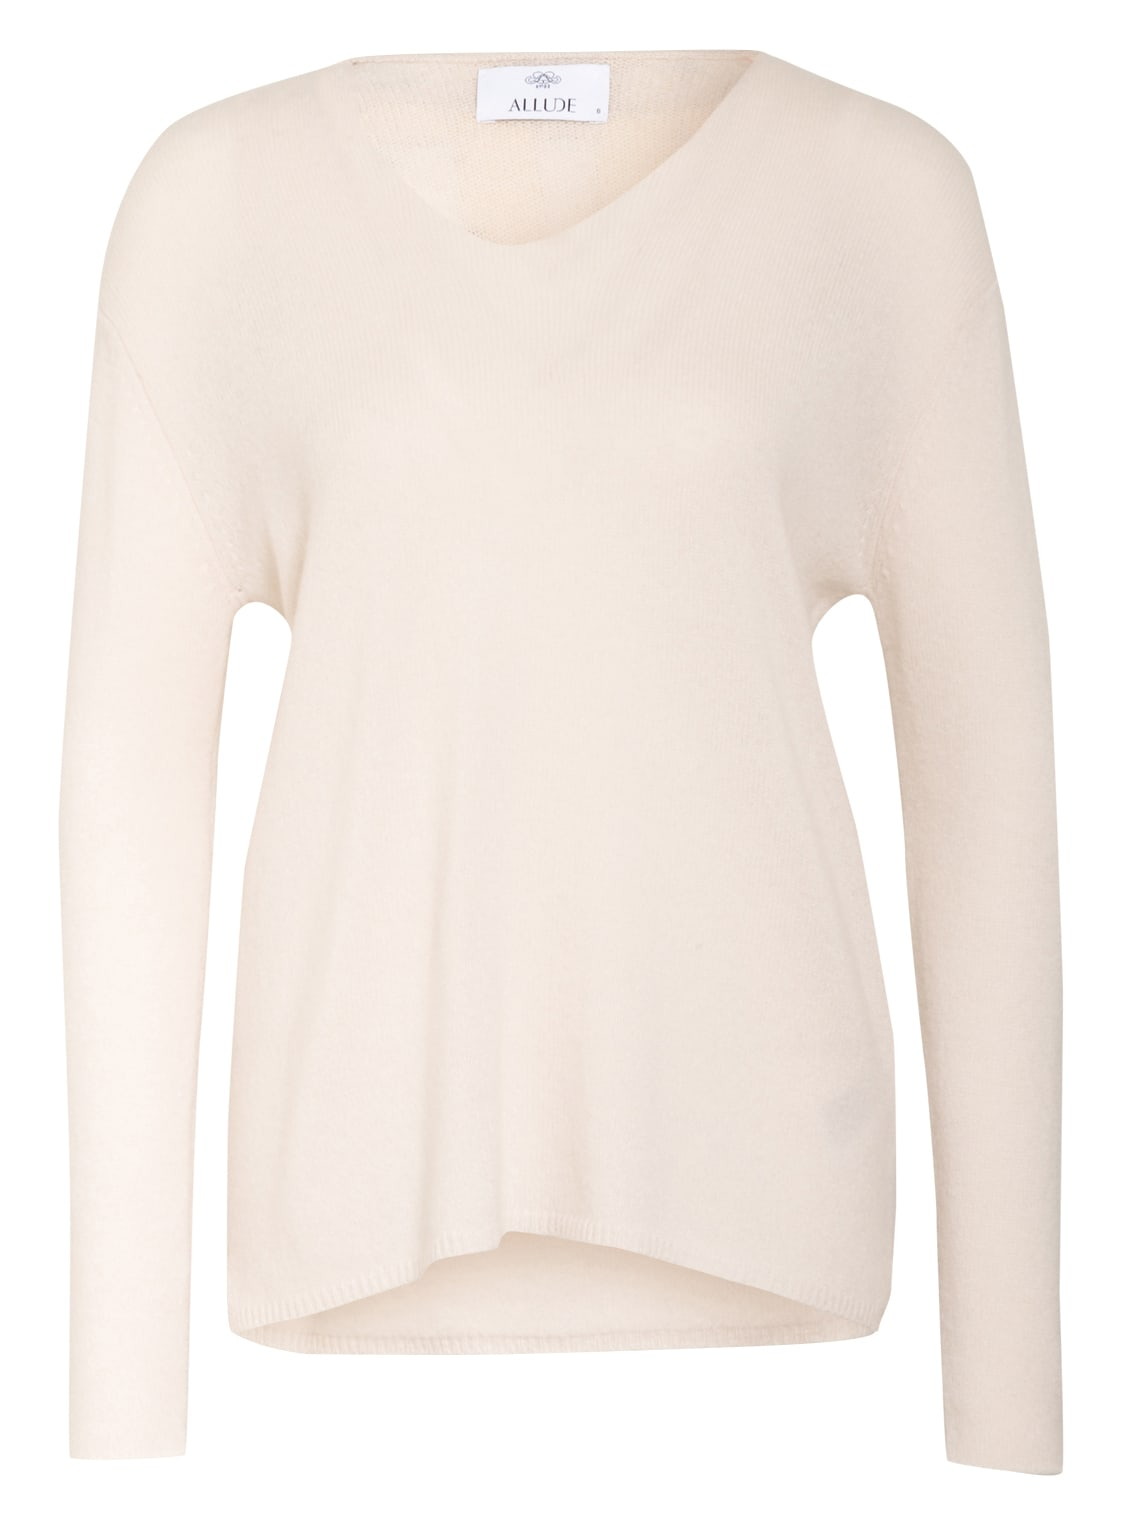 Image of Allude Cashmere-Pullover weiss